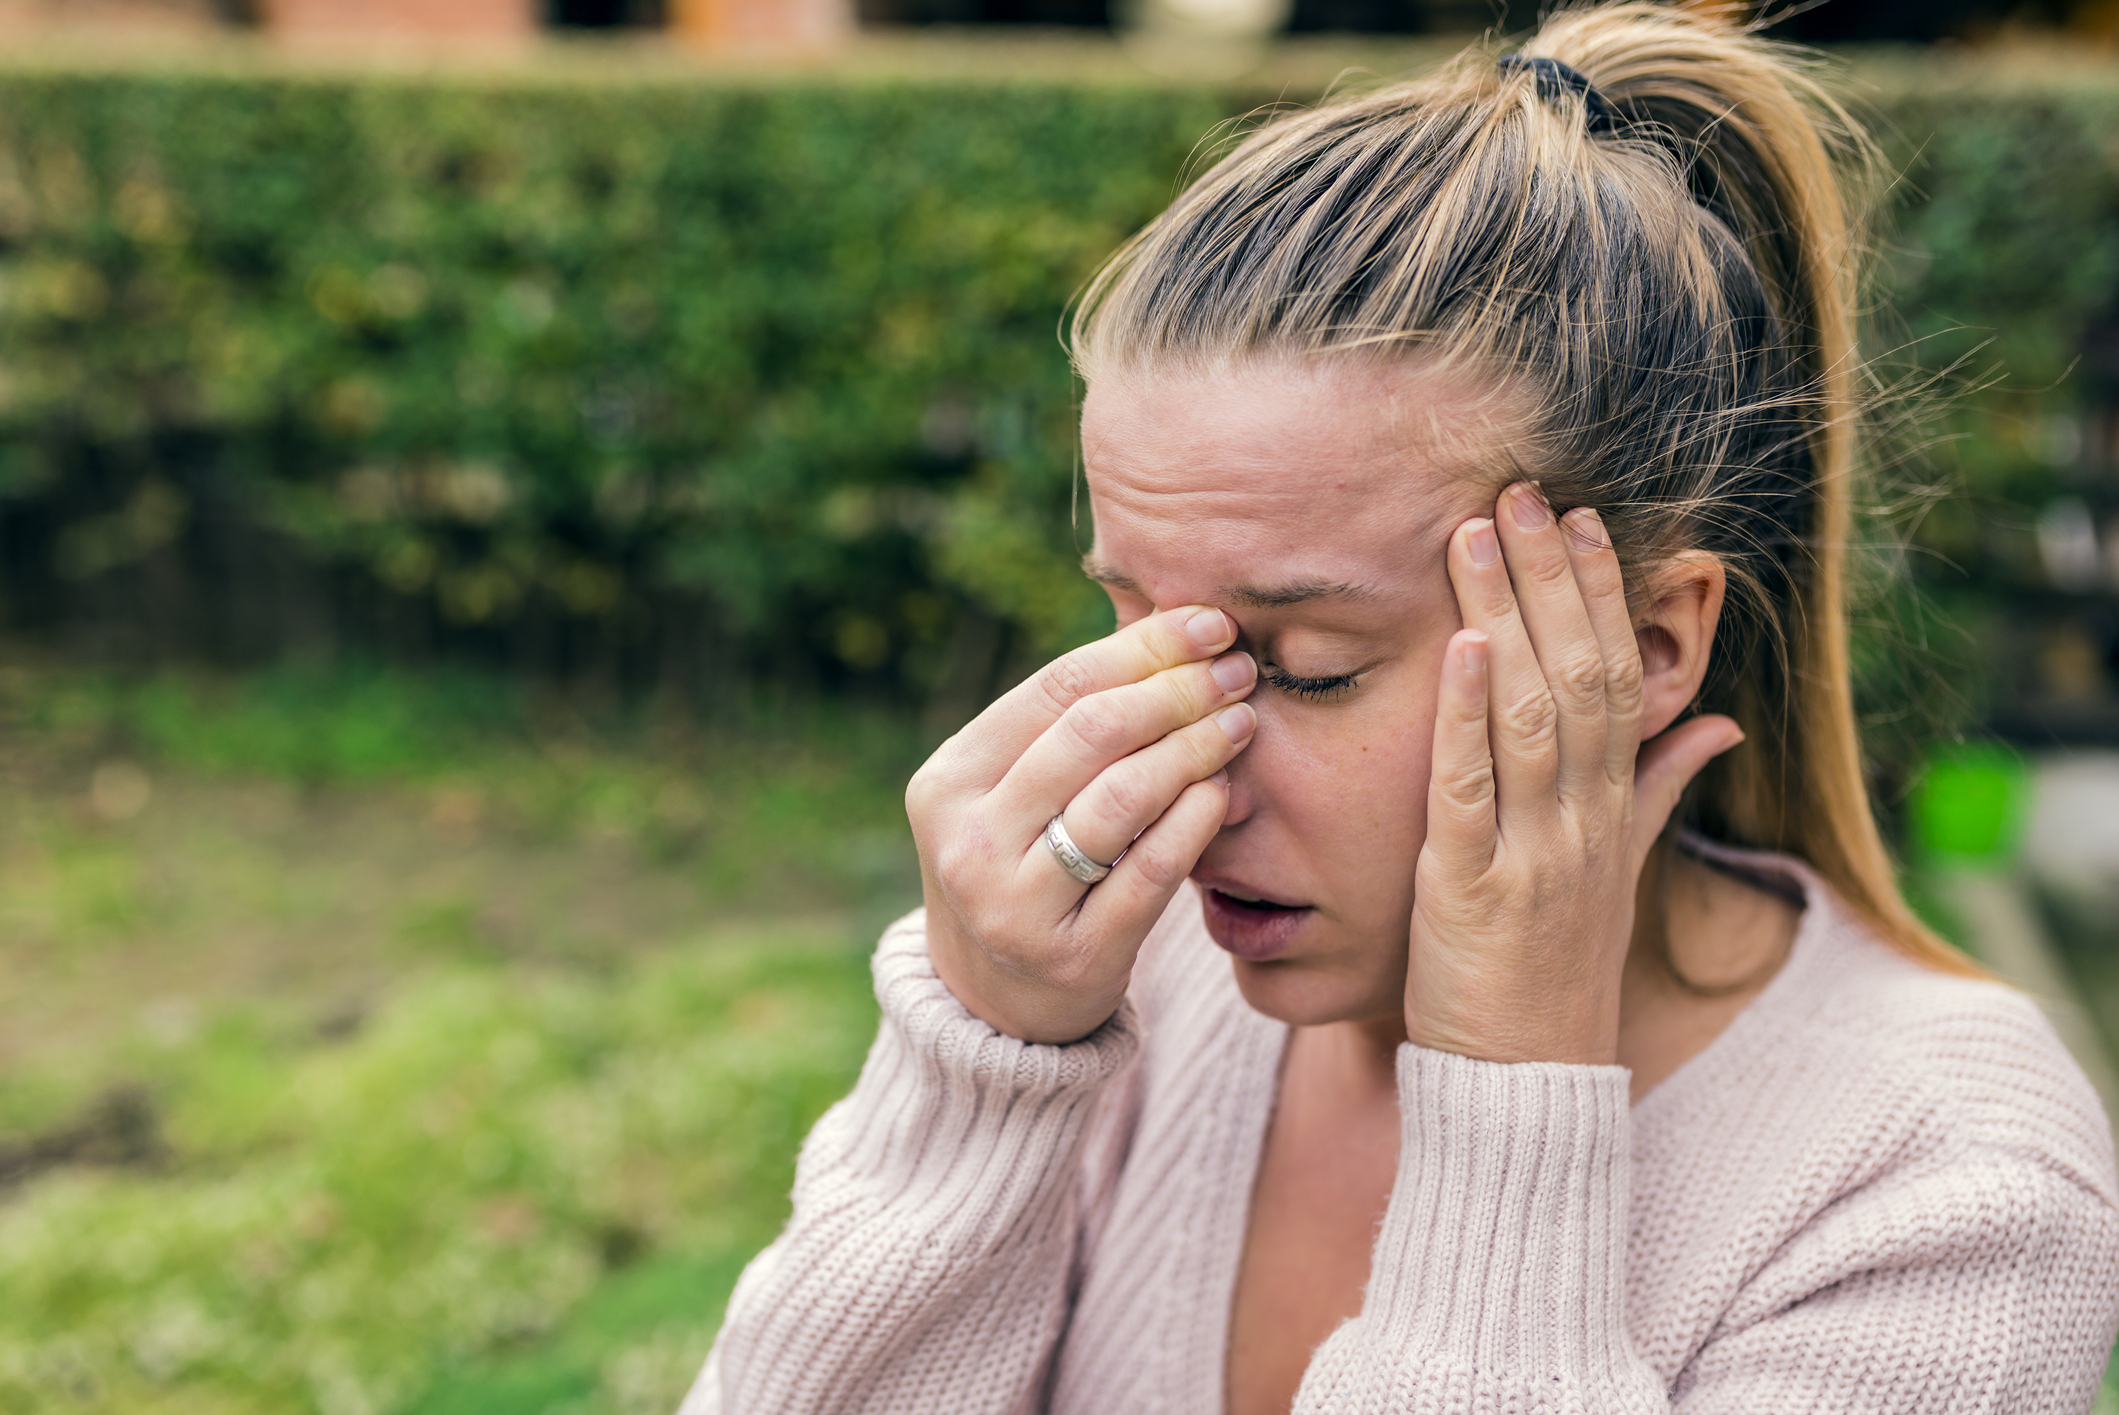 Some Unknown Side Effects of Sinus Issues